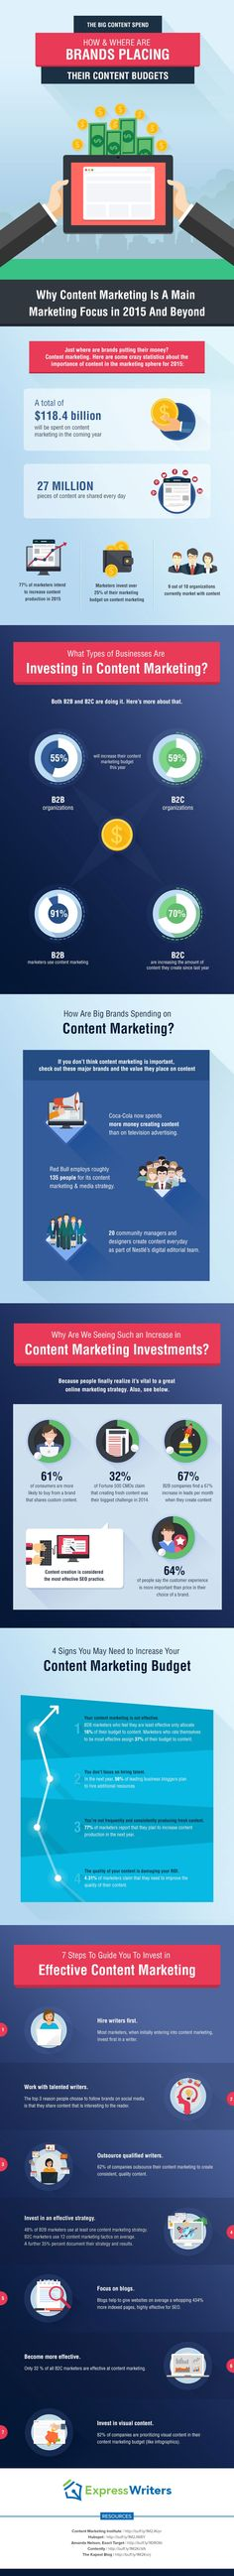 The big content spend How and where are brands placing their content budgets